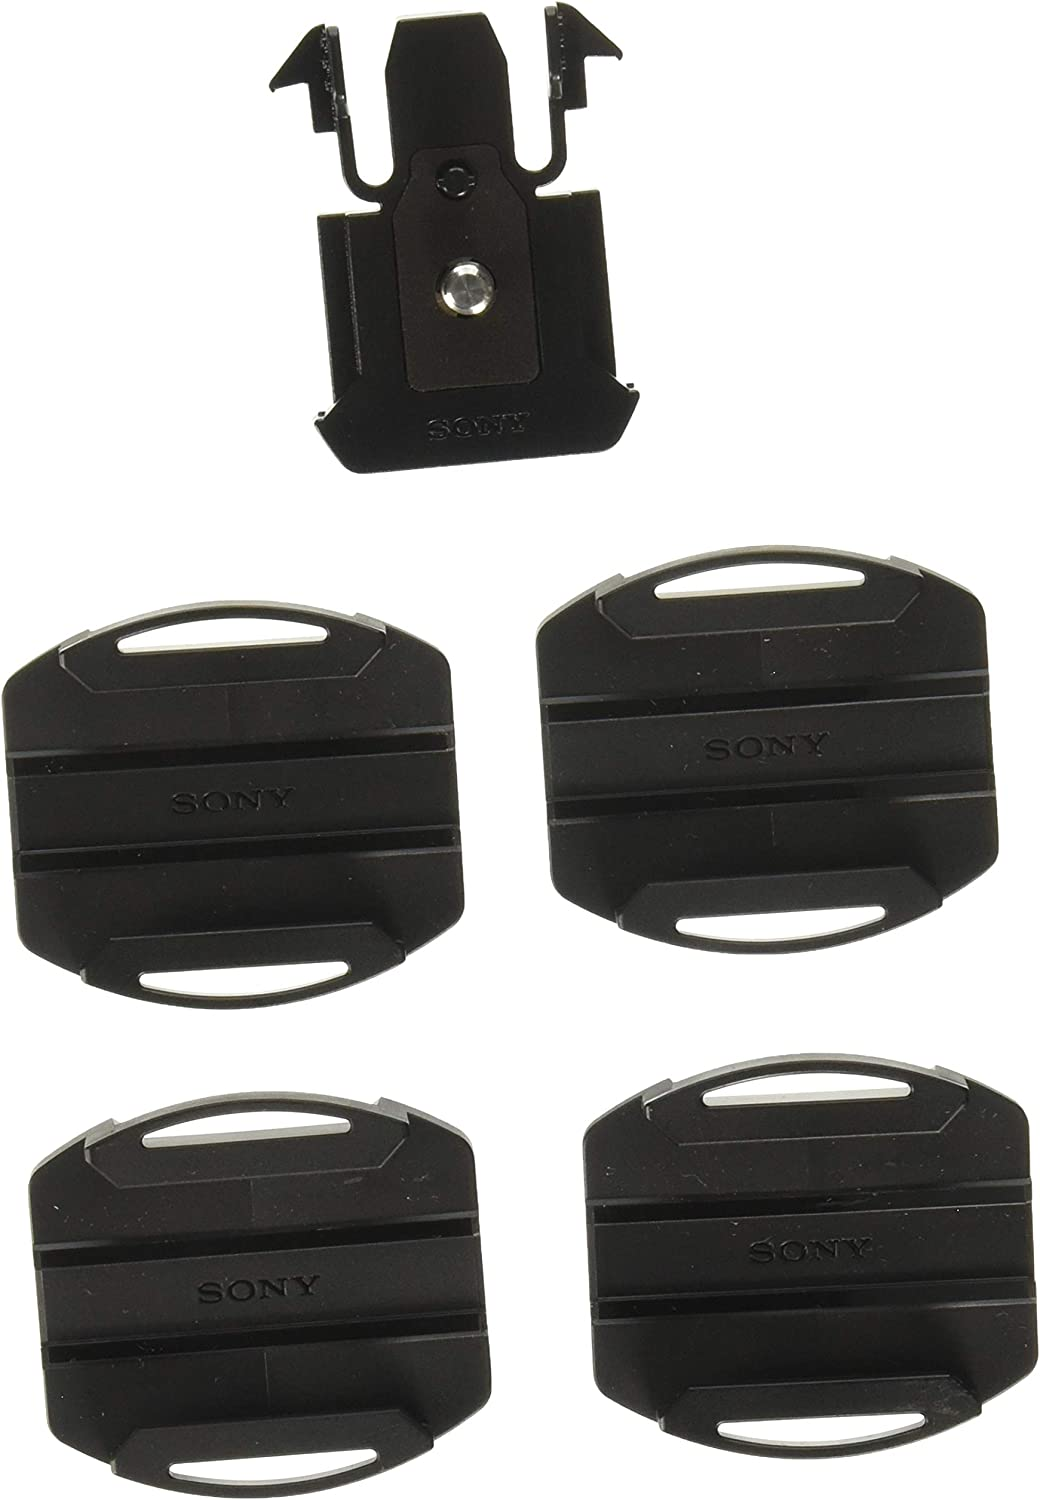 2 Curved Mounts 2 Flat Adhesives Kit For Sony Action Cam VCT-AM1 Video Camera